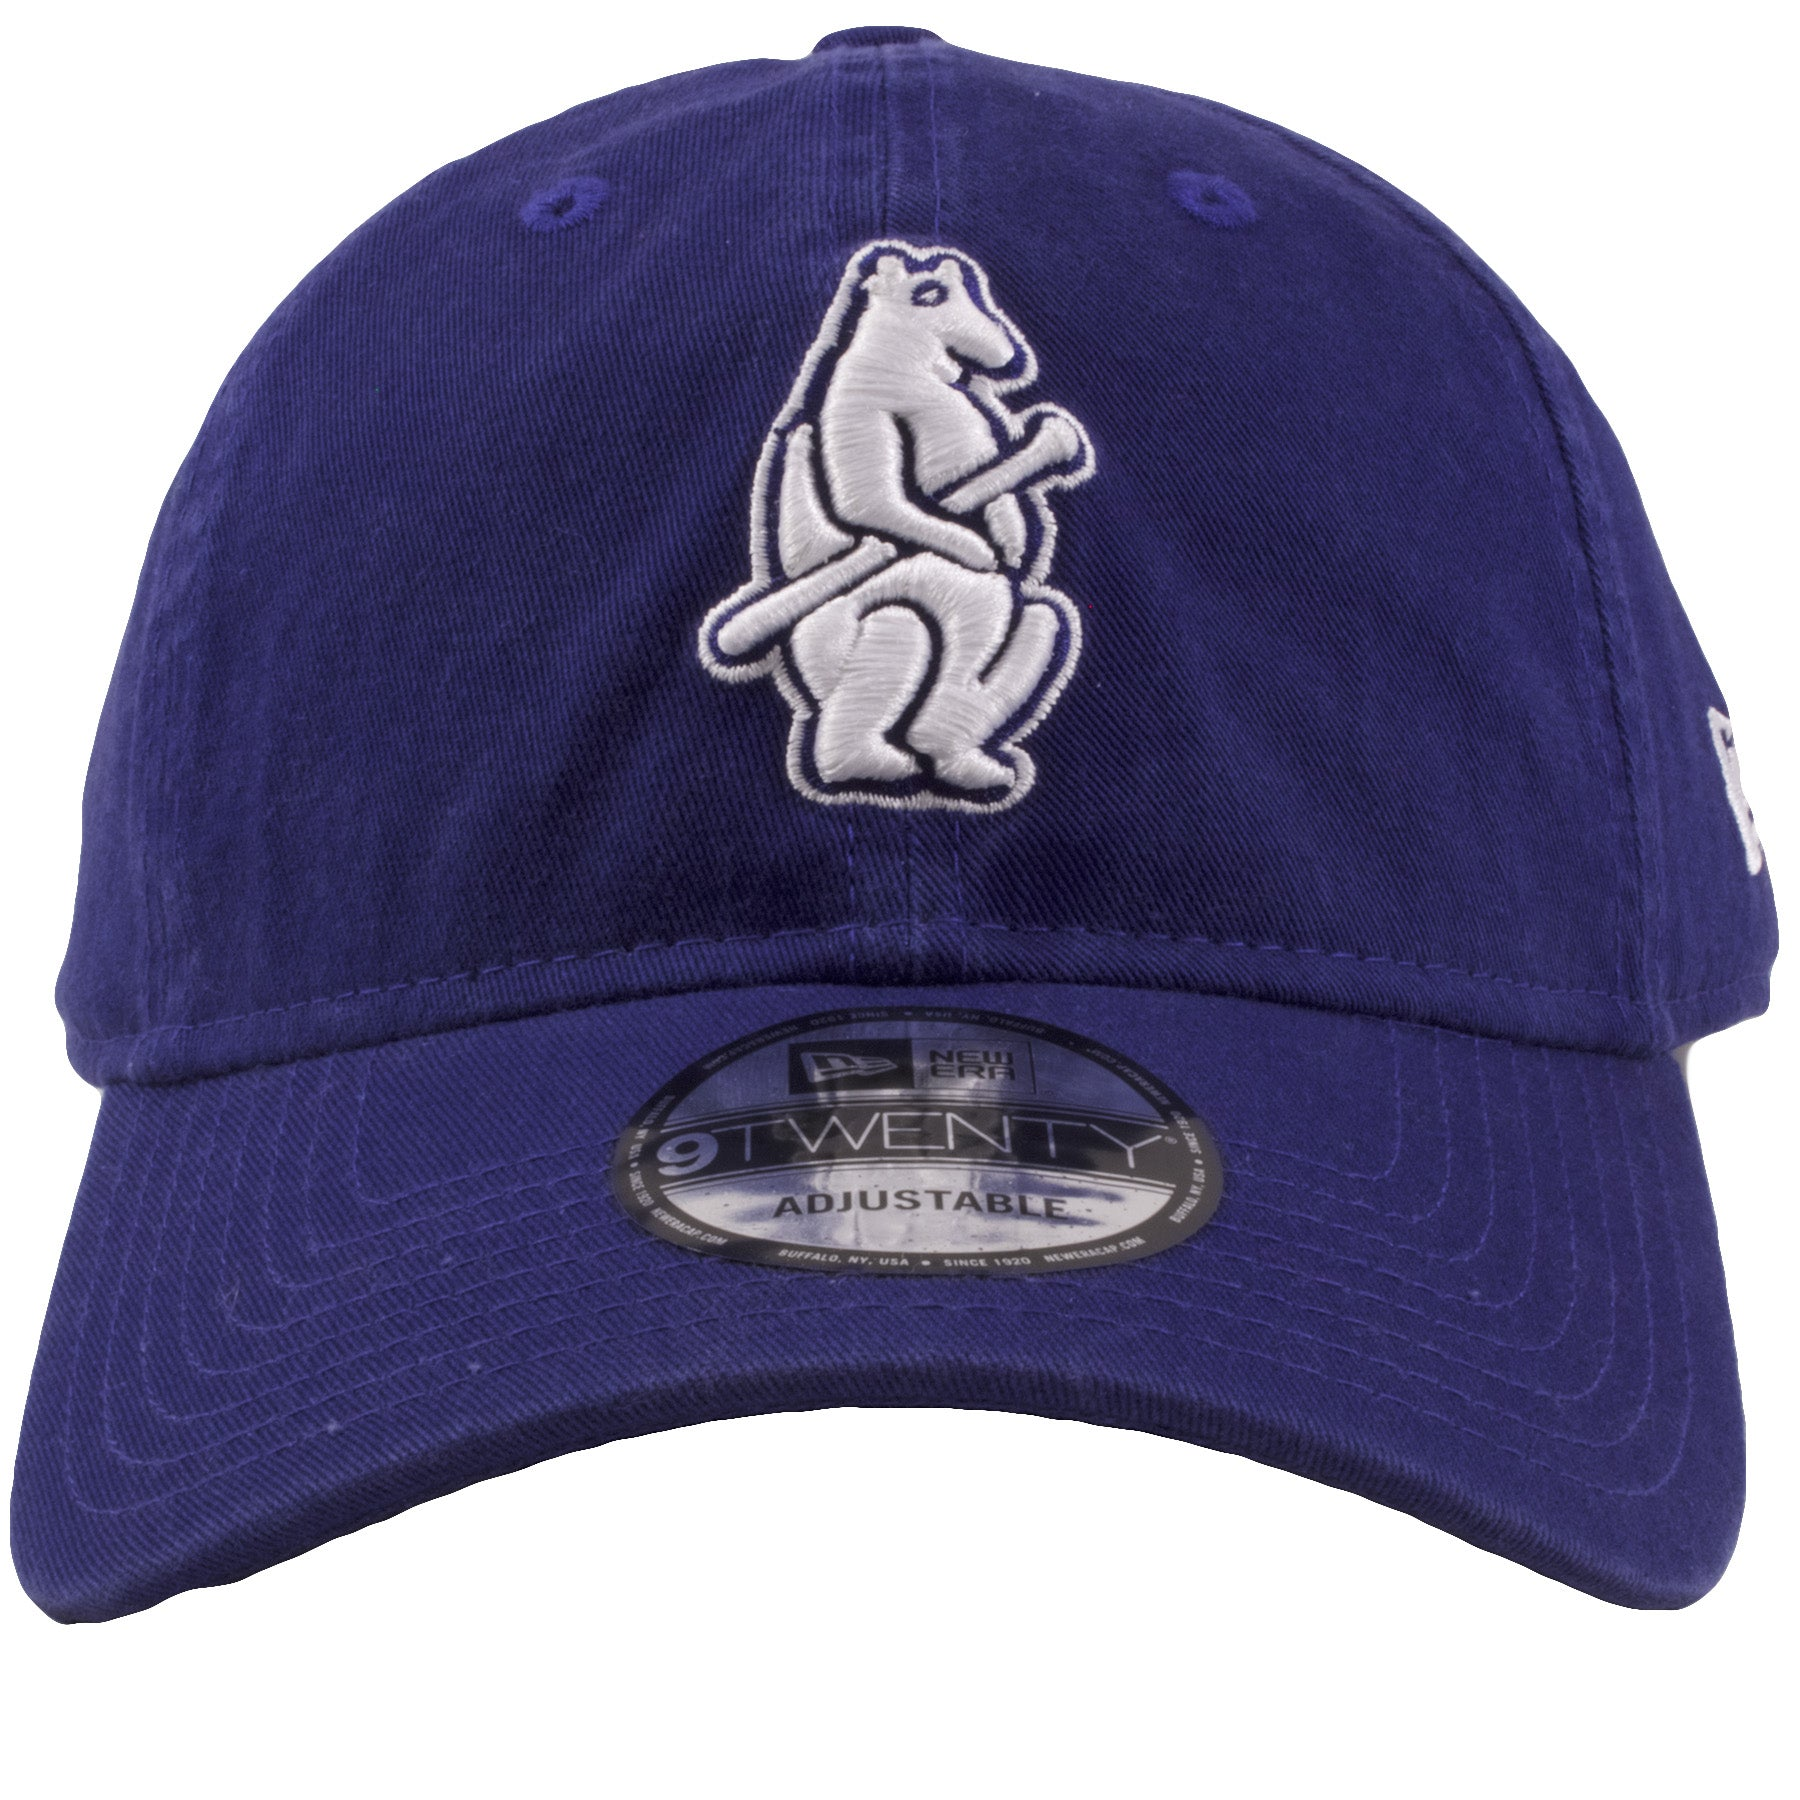 a6392895f52 embroidered on the front of the vintage blue chicago cubs dad hat is the  throwback wrigley